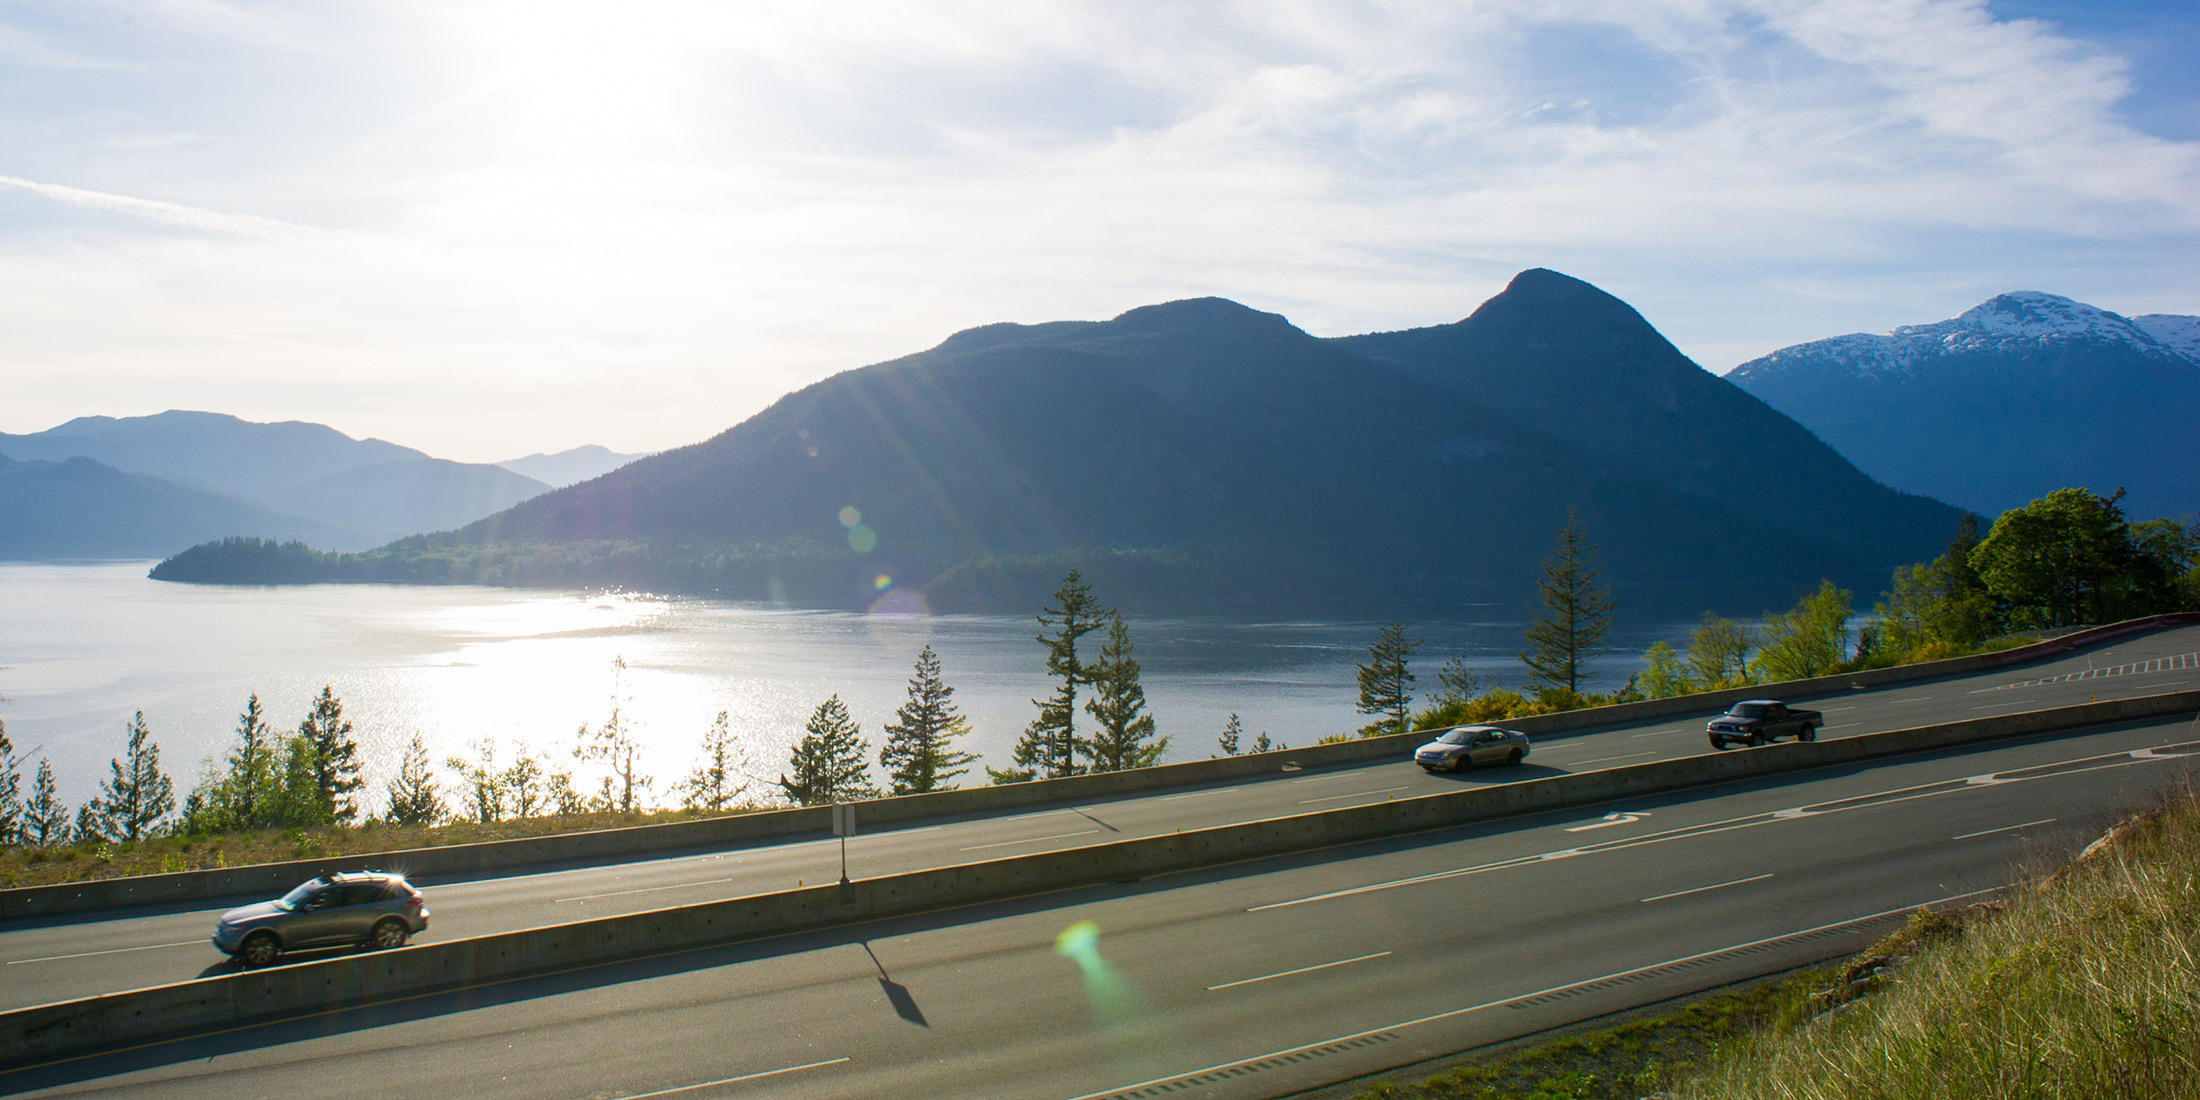 Highway 99 from Vancouver to Whistler